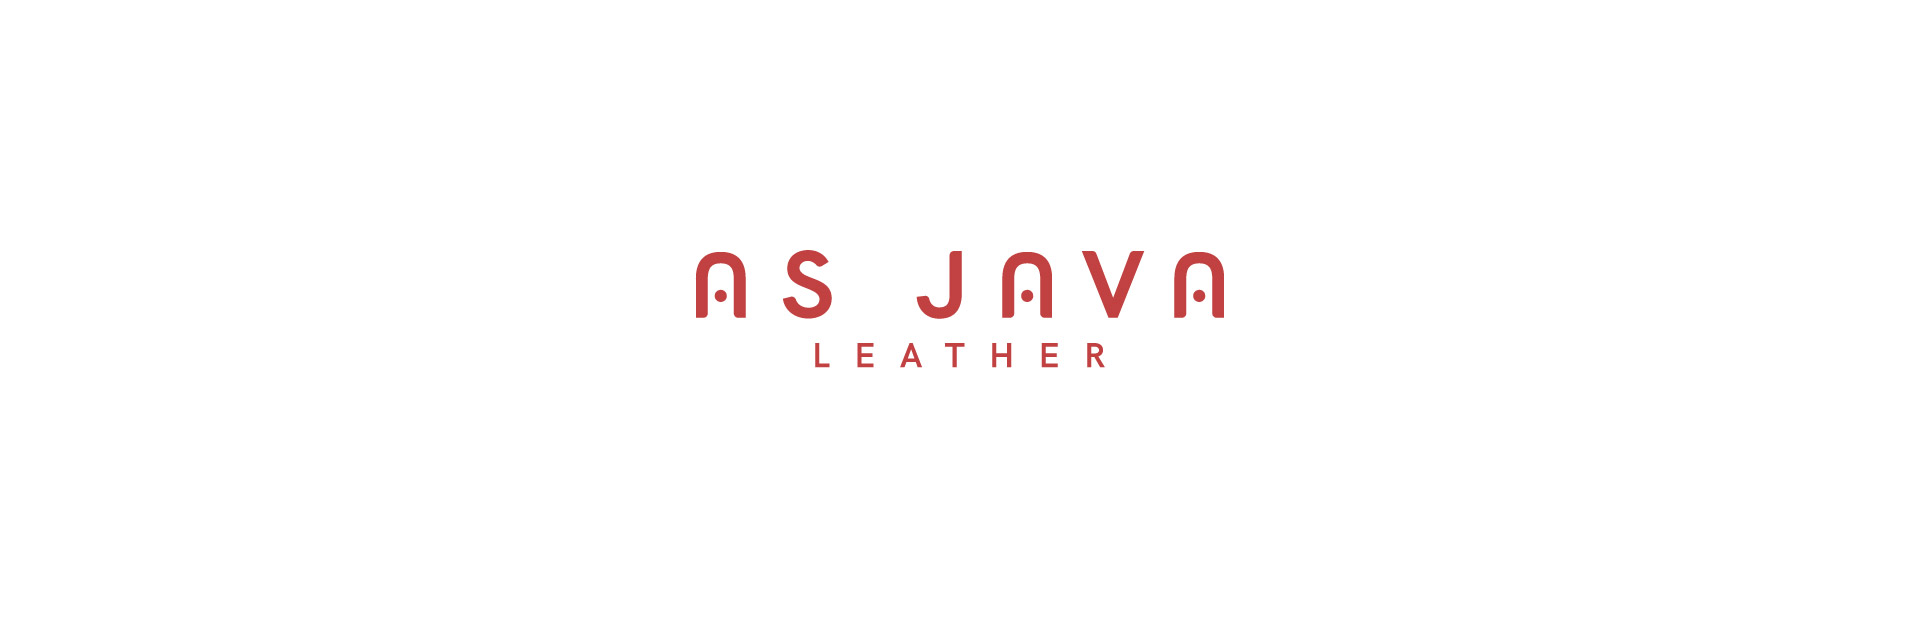 As Java Leather | Yogyakarta, Indonesia | Traditional Leather Goods | 2018